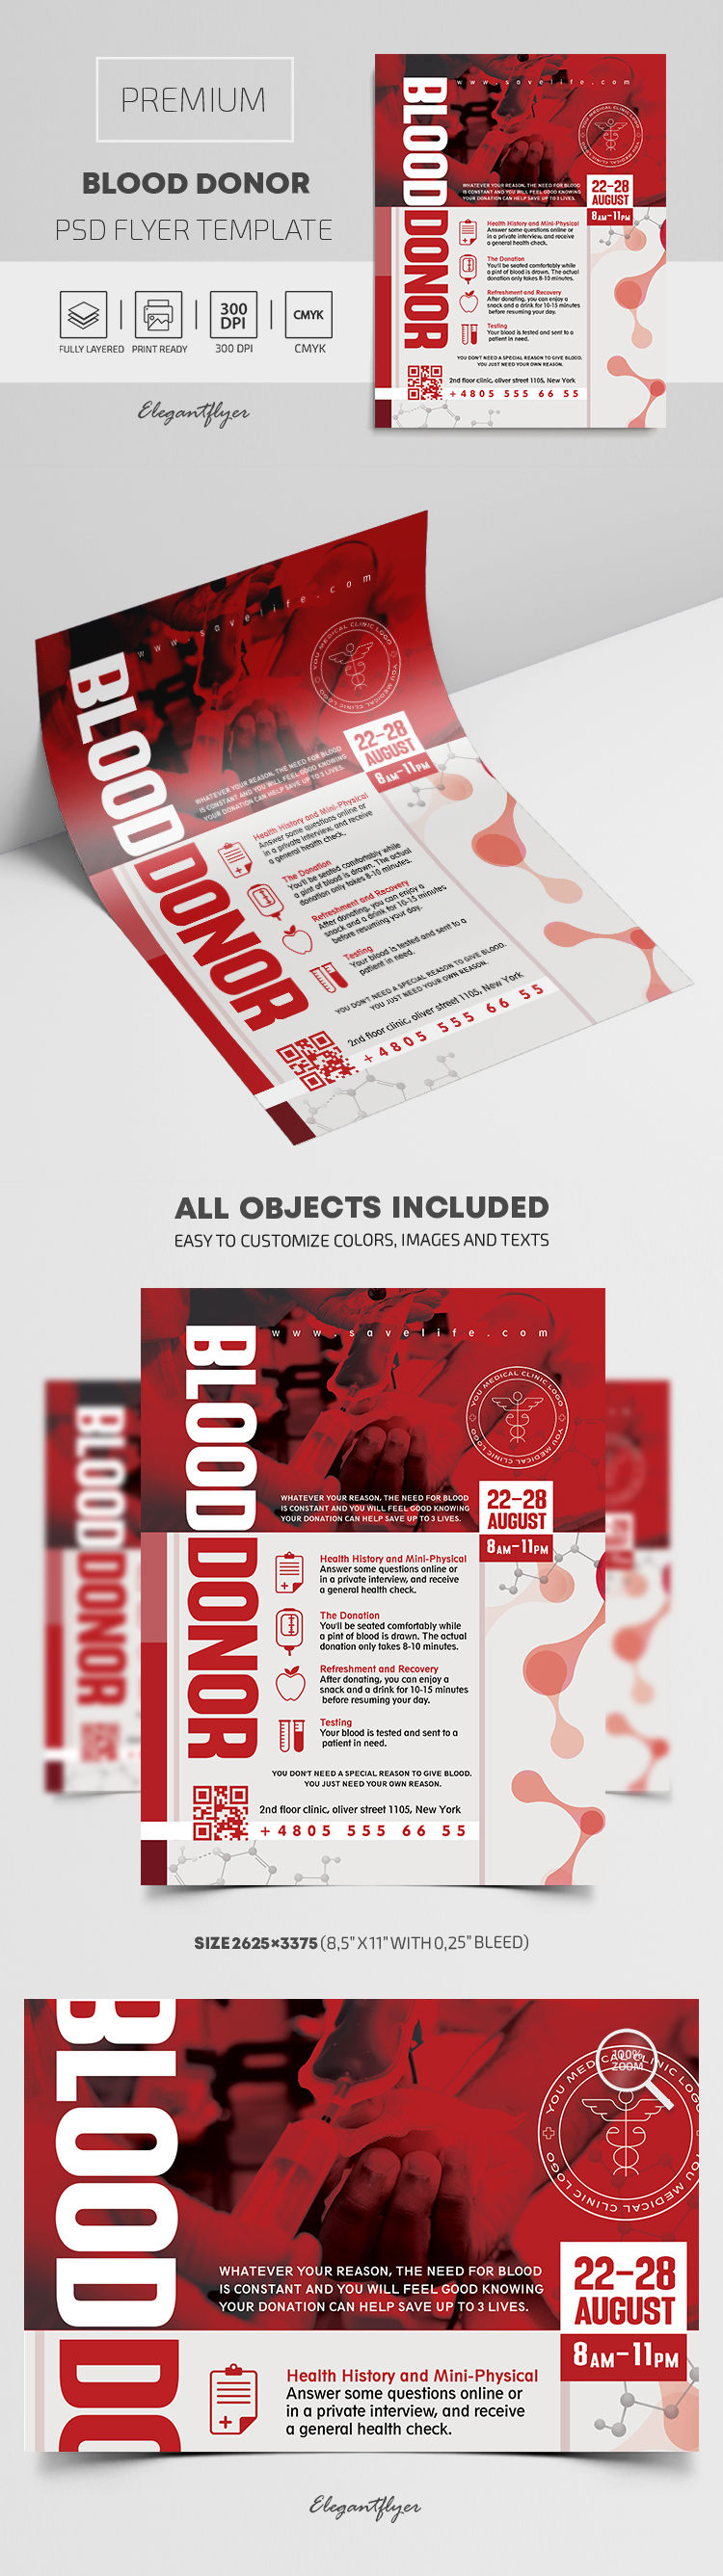 Blood Donor – Premium PSD Flyer Template